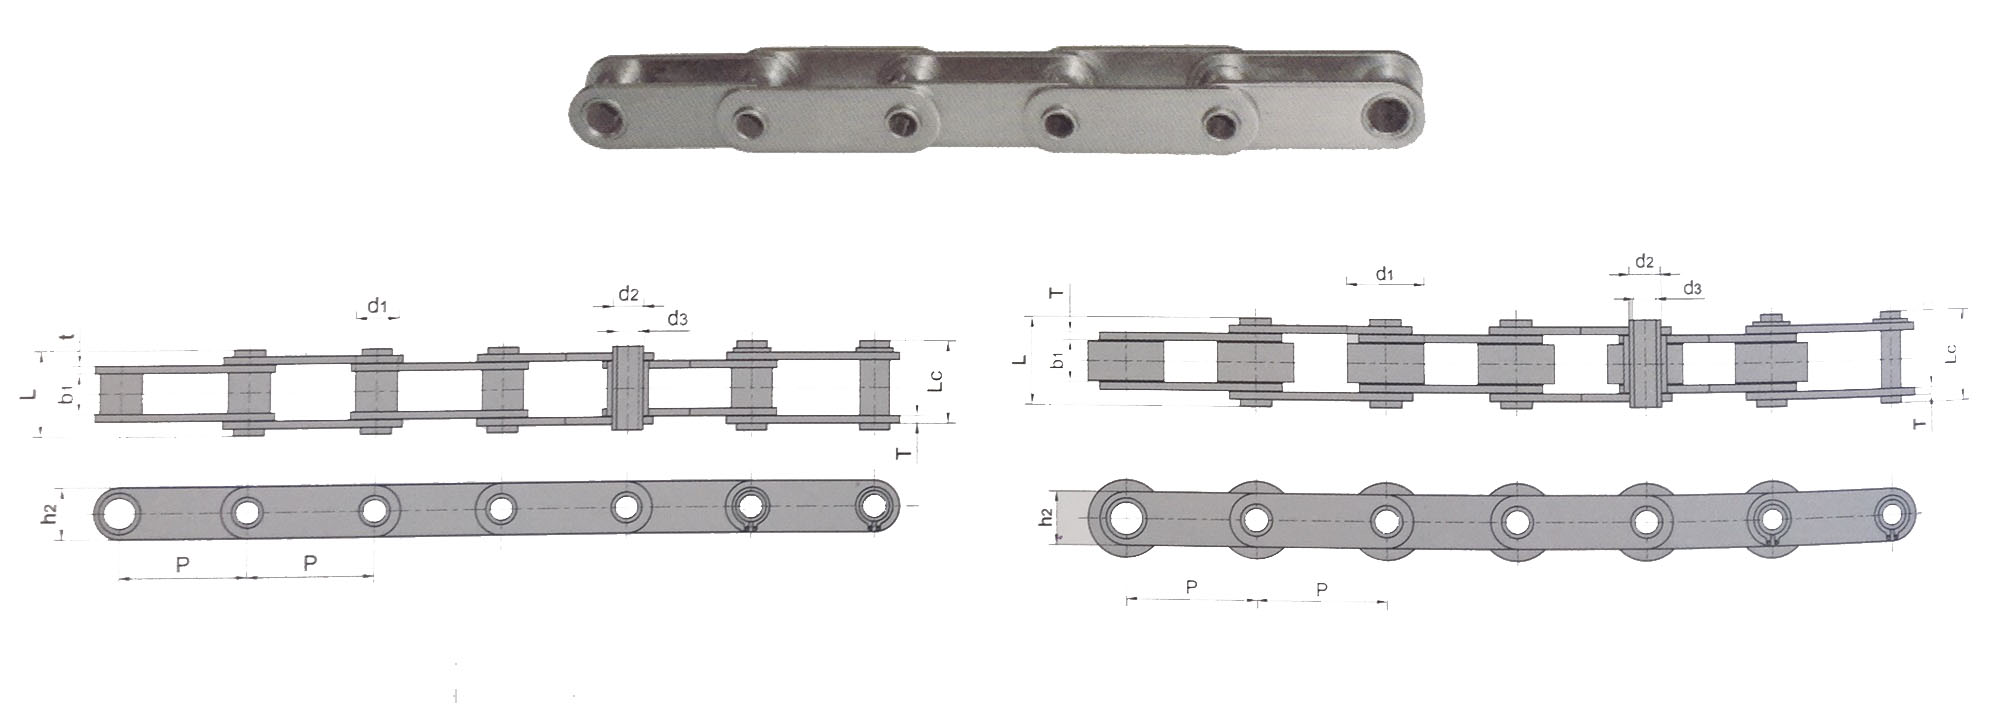 C2060HPSS Connecting Link Stainless Steel Hallow Pin Roller Chain (2 PIECES)